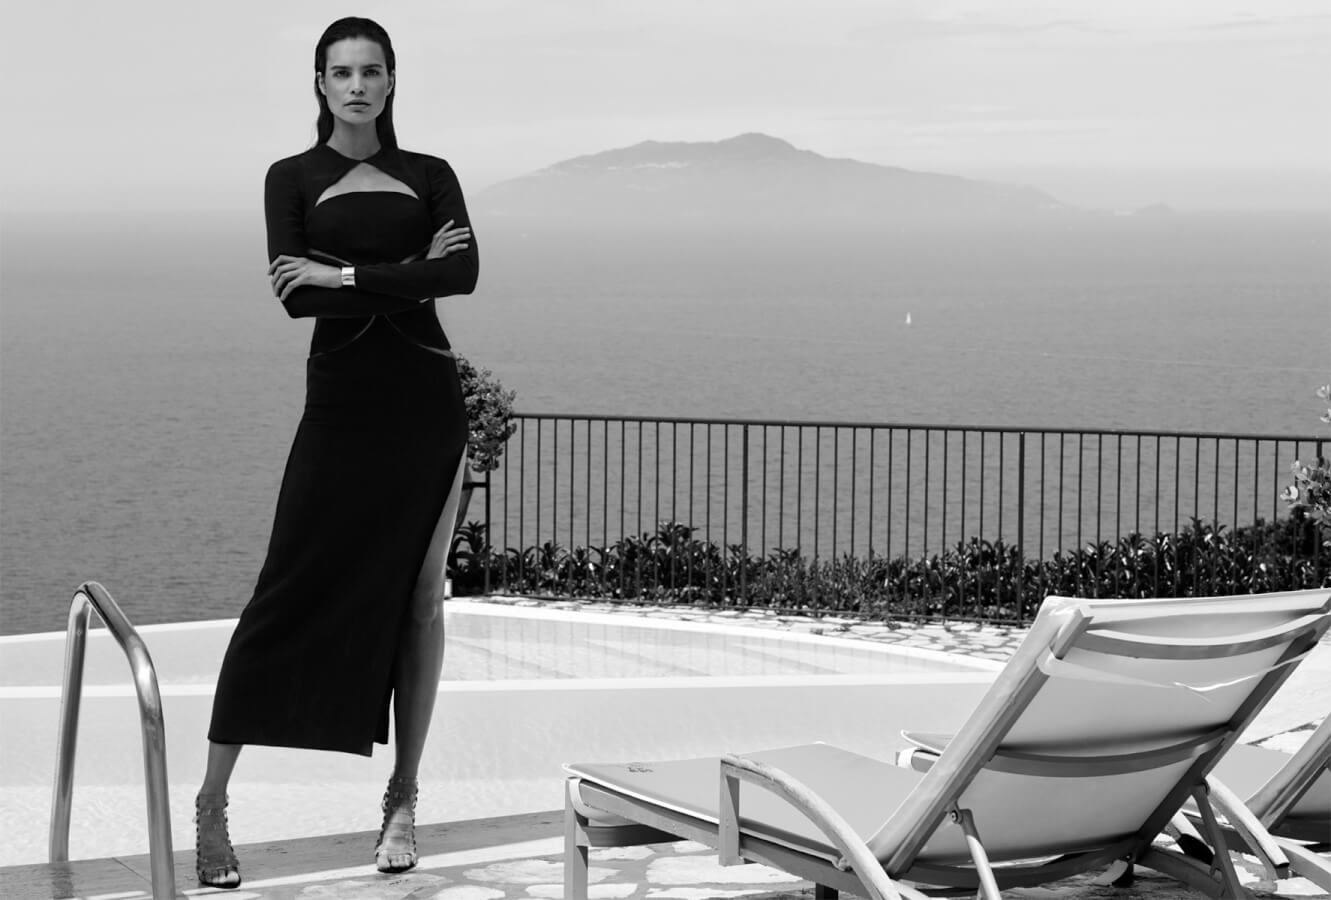 03_Alvaro_Beamud_Cortes_Air_France_Madame_Capri